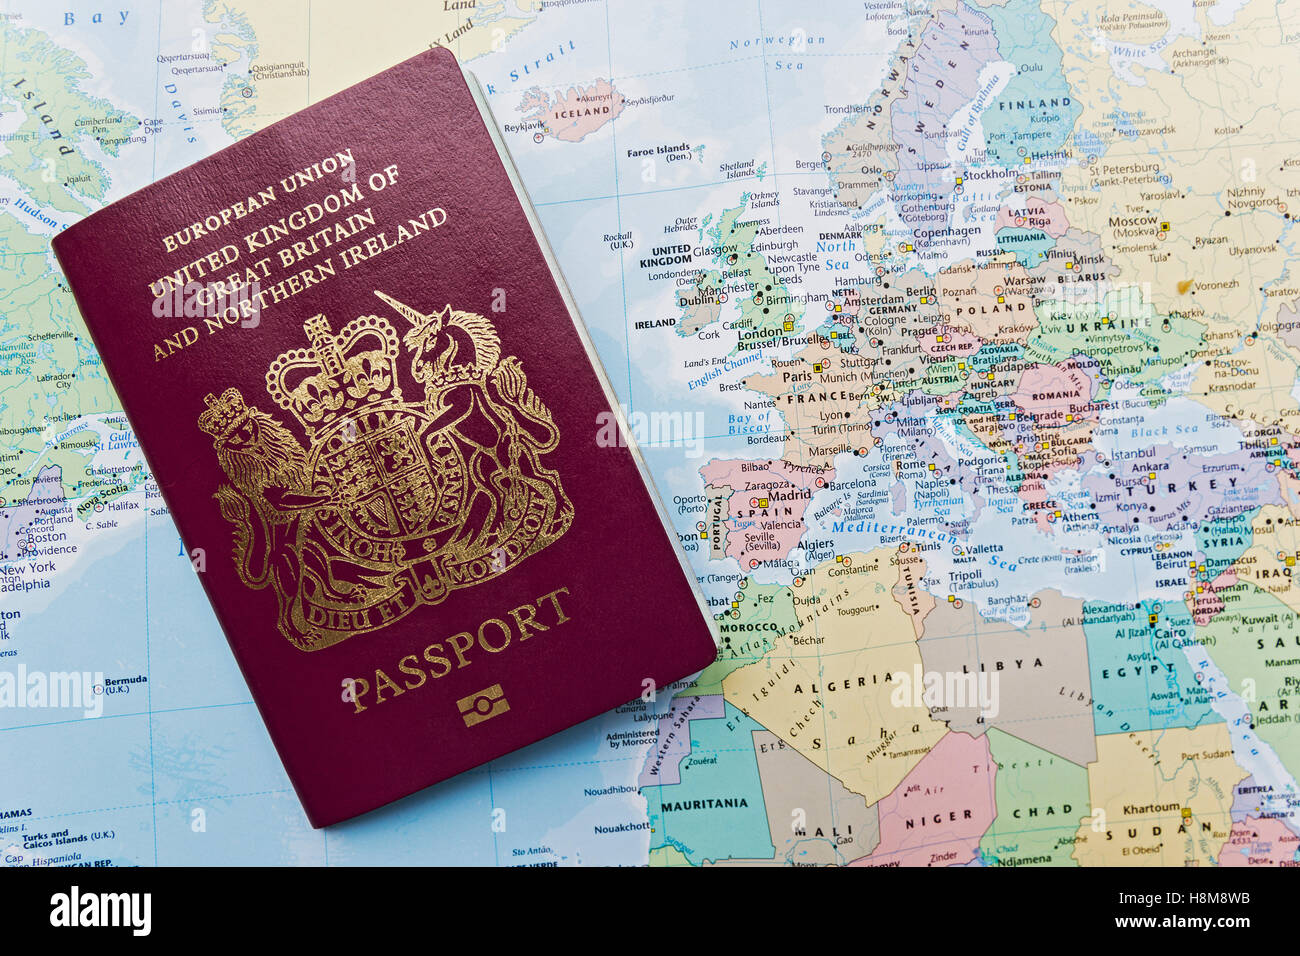 British passport world map stock photos british passport world map british passport of the european union on a world map with emphasis on europe gumiabroncs Choice Image